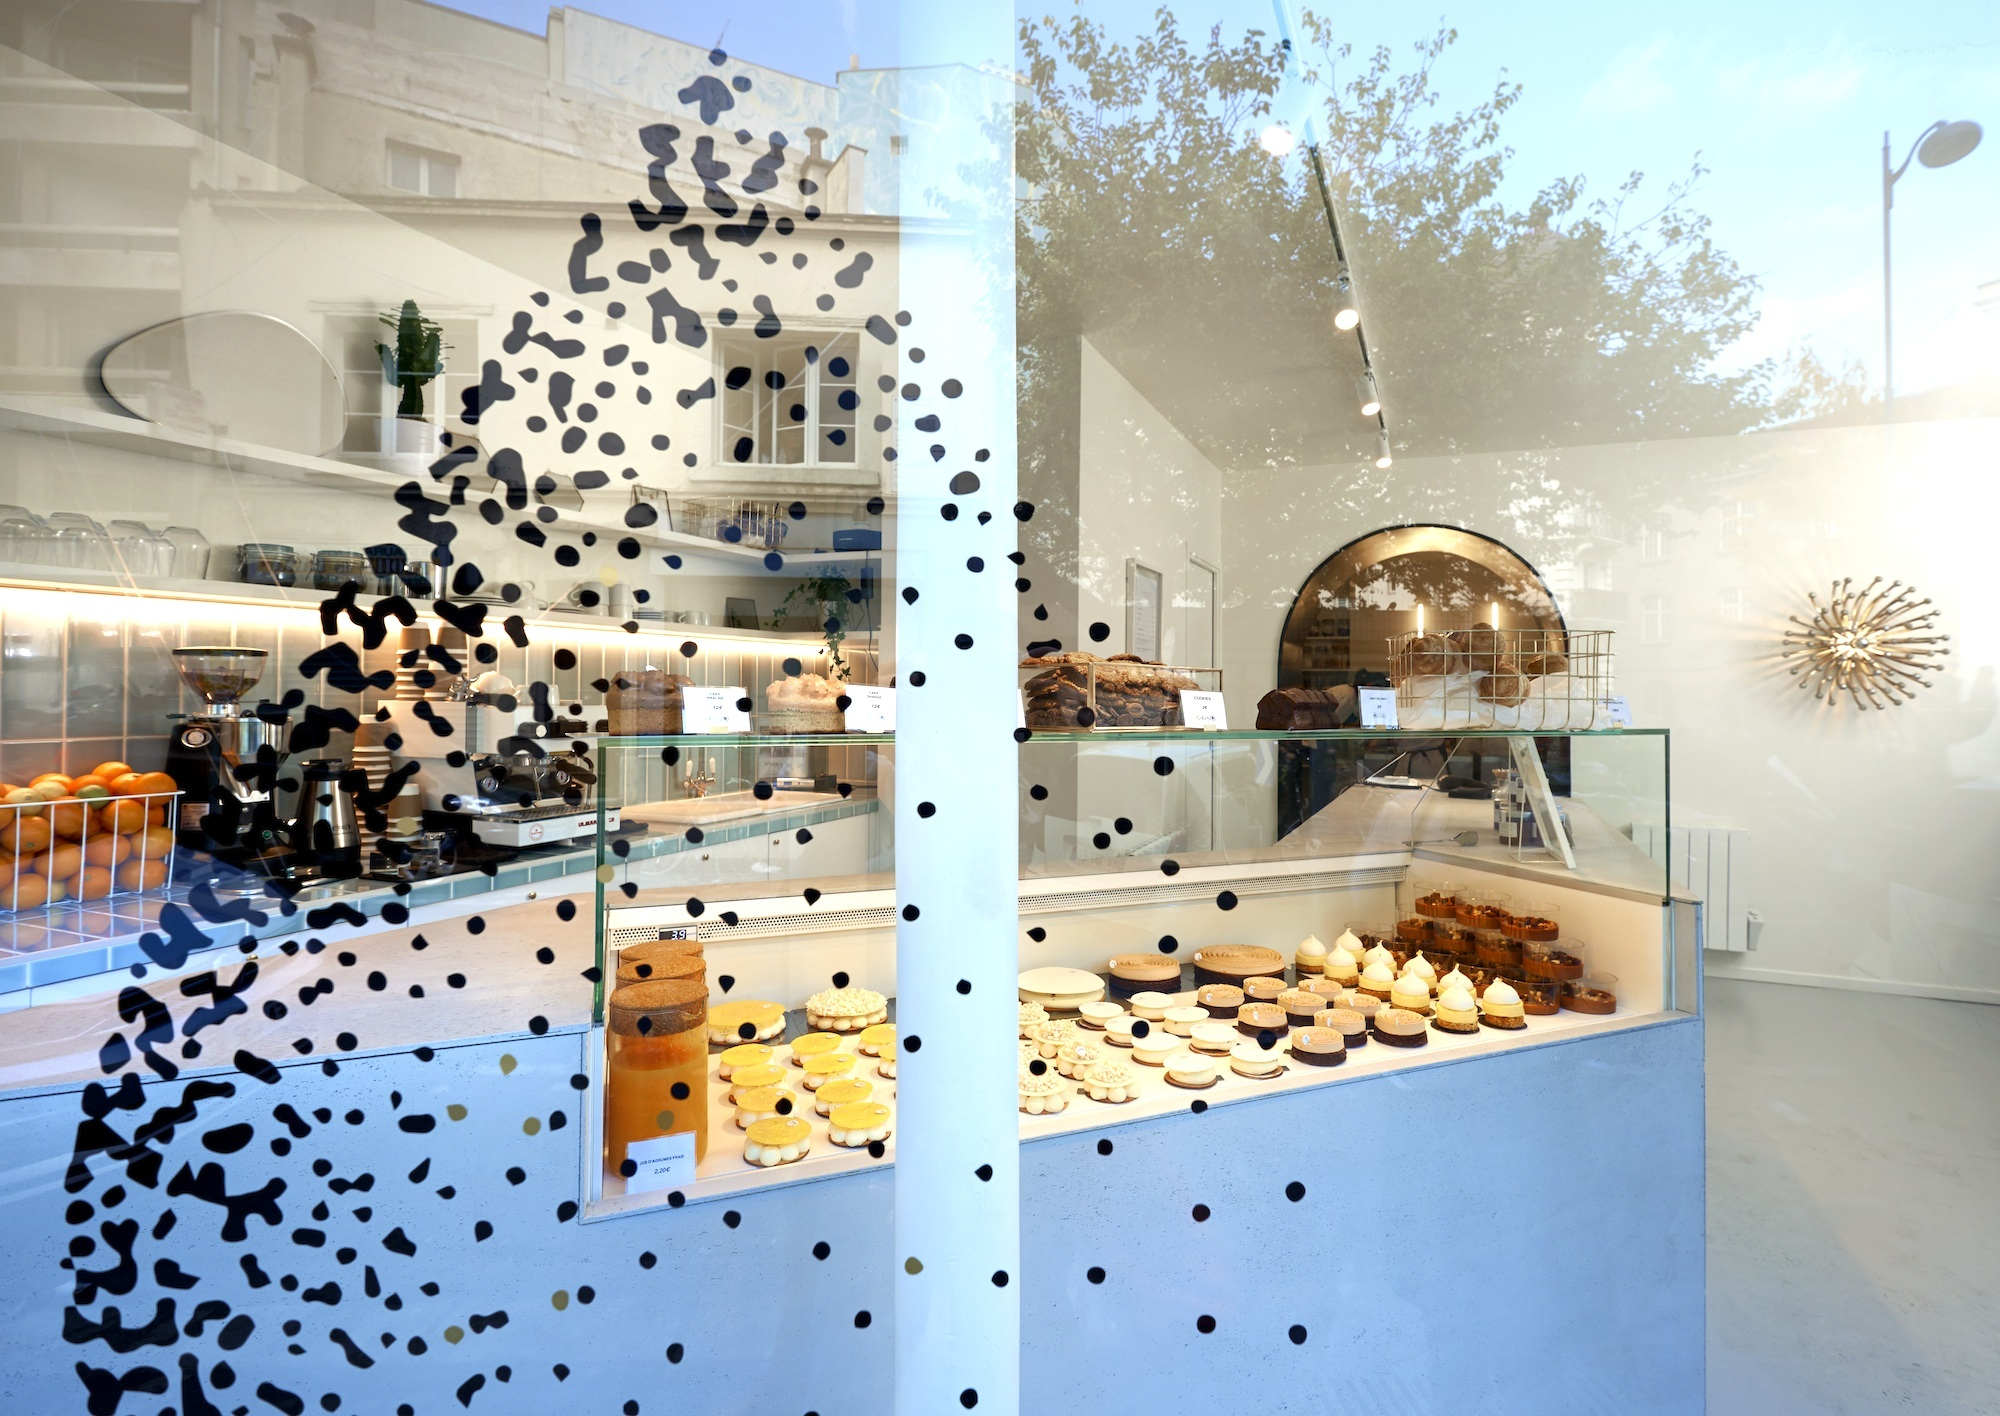 A blend of specialty coffee shop and high-end French pâtisserie, La Goutte d'Or proposes a mix of traditional viennoiseries such as croissants and madeleines, as well as edgier creations that reflect Menguy's quirky style.